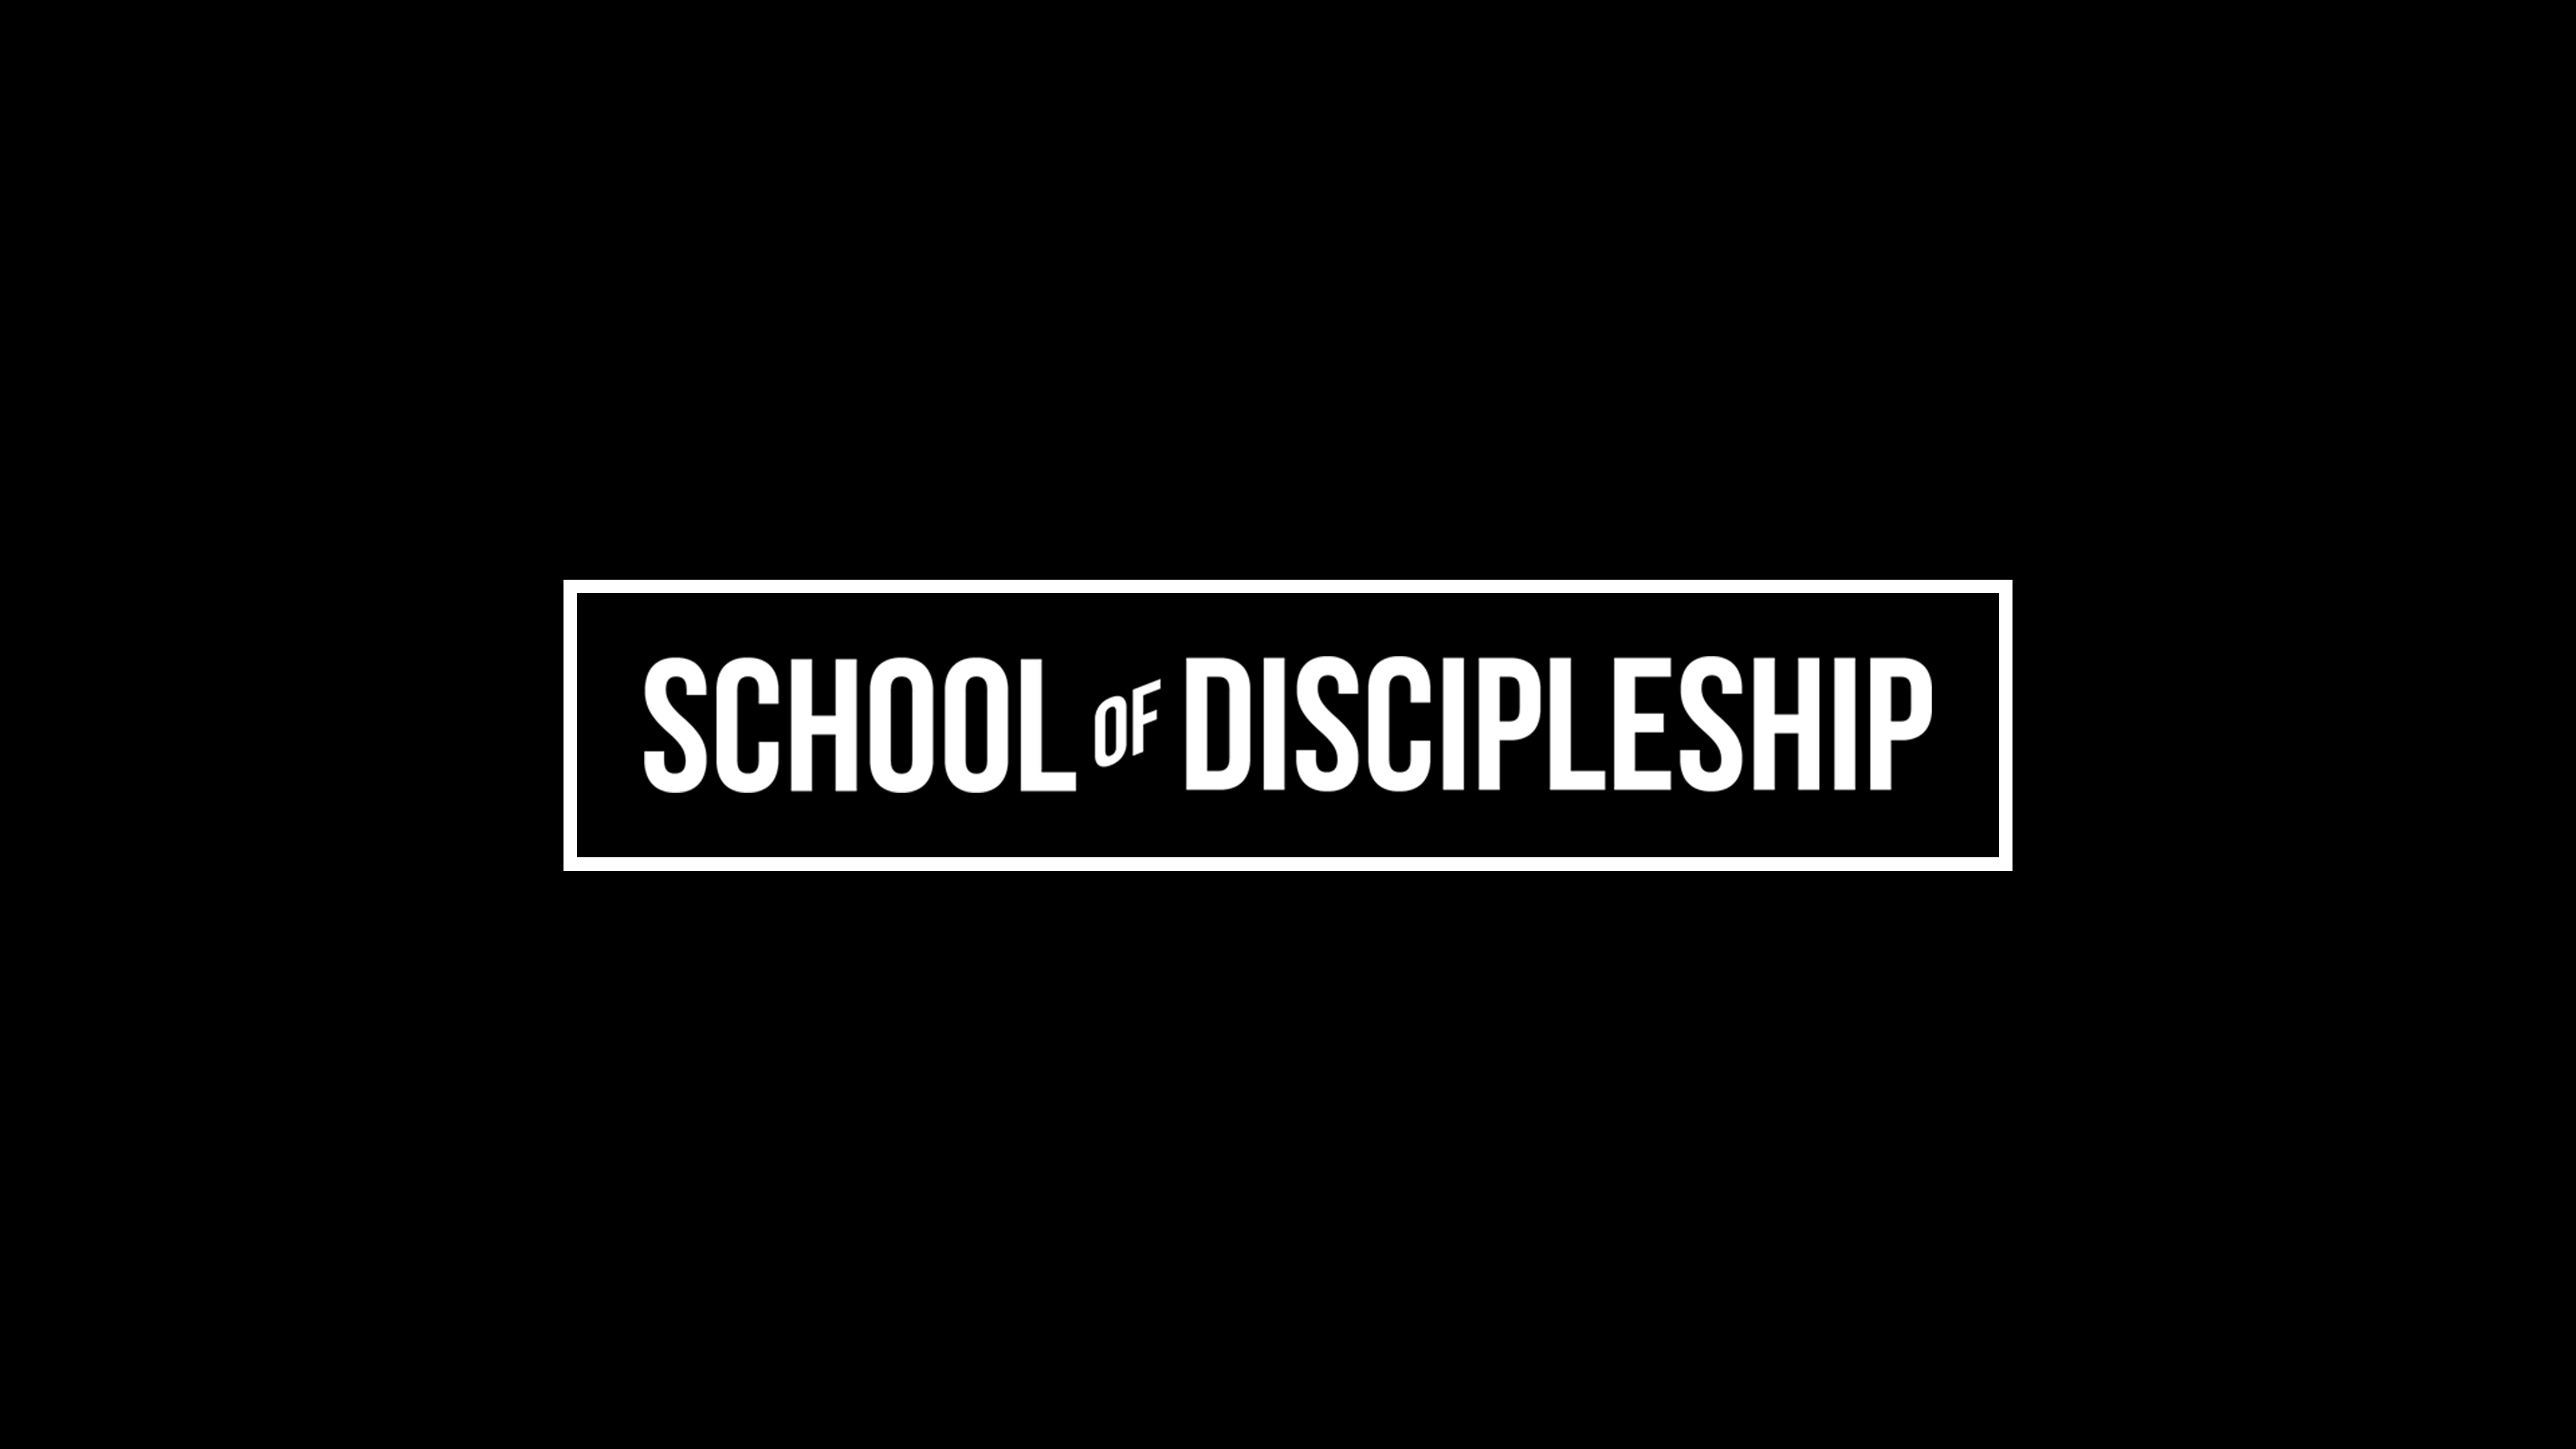 School of Discipleship at the Orange County campus